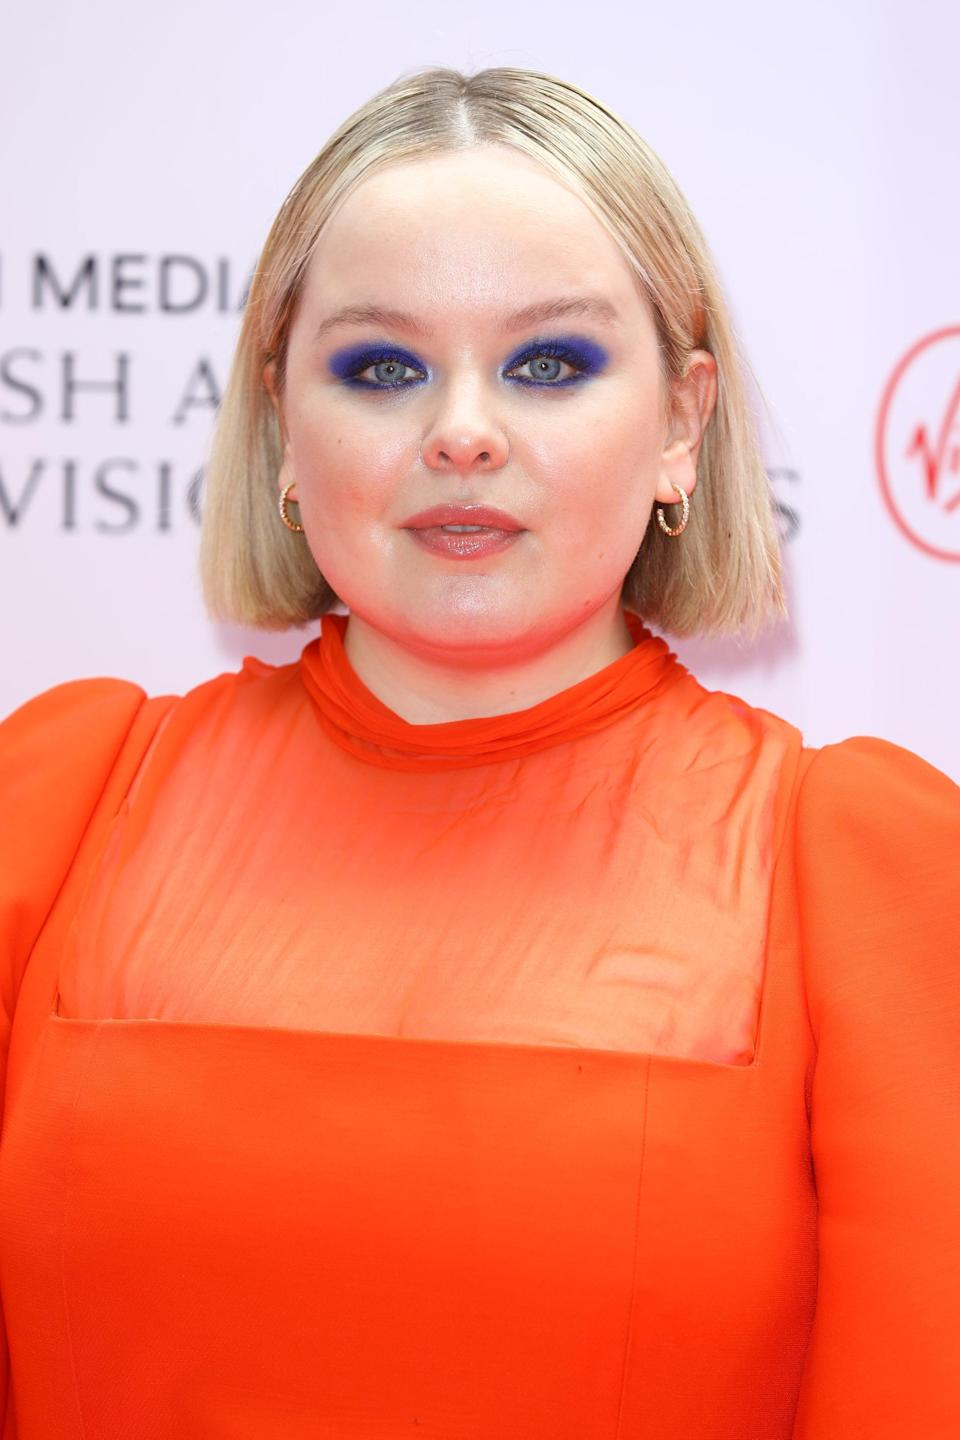 """<p>Coughlan's look for the night was all about vibrant colors. Makeup artist <a href=""""https://www.instagram.com/neilyoungbeauty/?hl=en"""" class=""""link rapid-noclick-resp"""" rel=""""nofollow noopener"""" target=""""_blank"""" data-ylk=""""slk:Neil Young"""">Neil Young</a> contrasted her vivid red dress with smoky eyes in the boldest shade of Yves Klein blue, dipping into the two cerulean colors found in the <span>Lancôme Hypnôse Palette in Bleu Hypnôtique</span> ($50).</p>"""